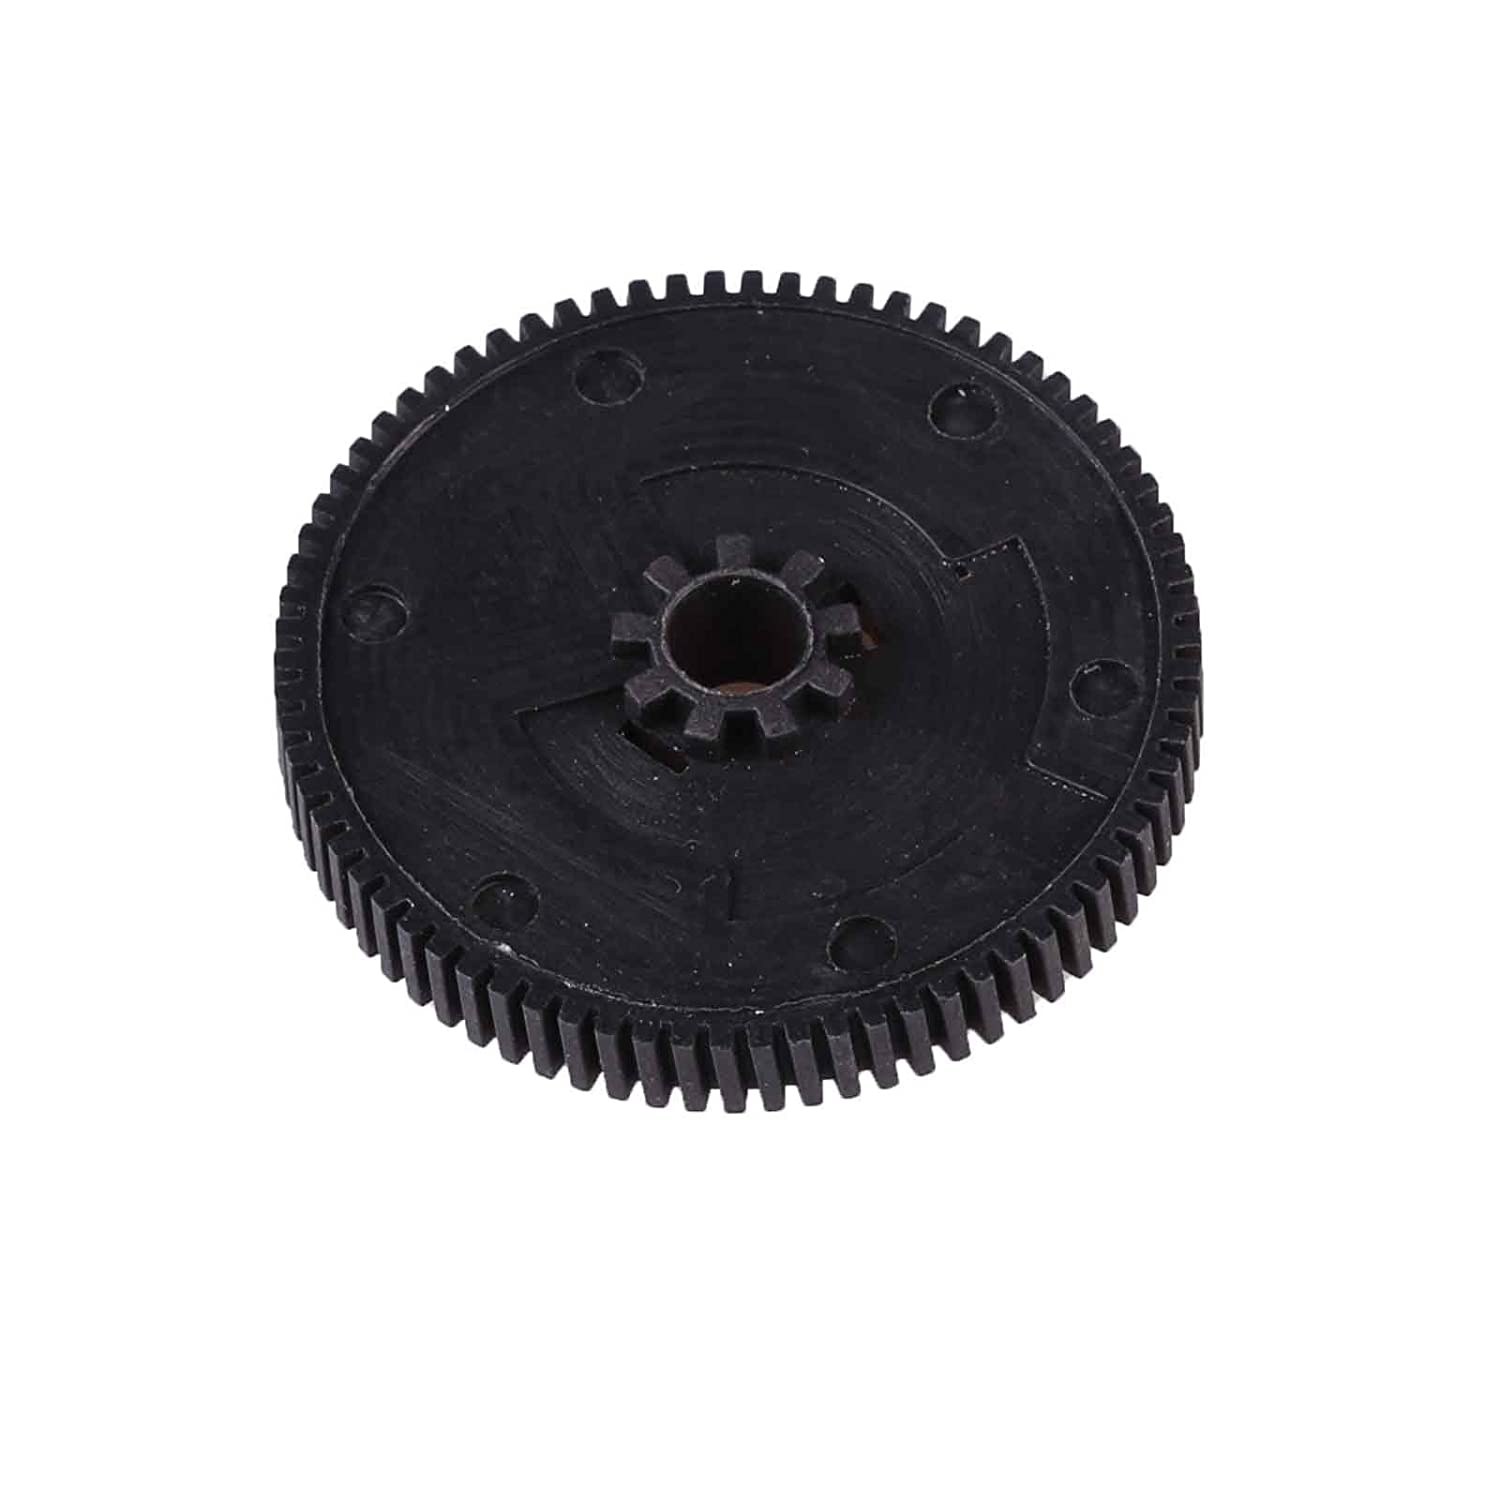 Rear Window Wiper Motor Repair Gear with Metal for Range Rover Land Rover